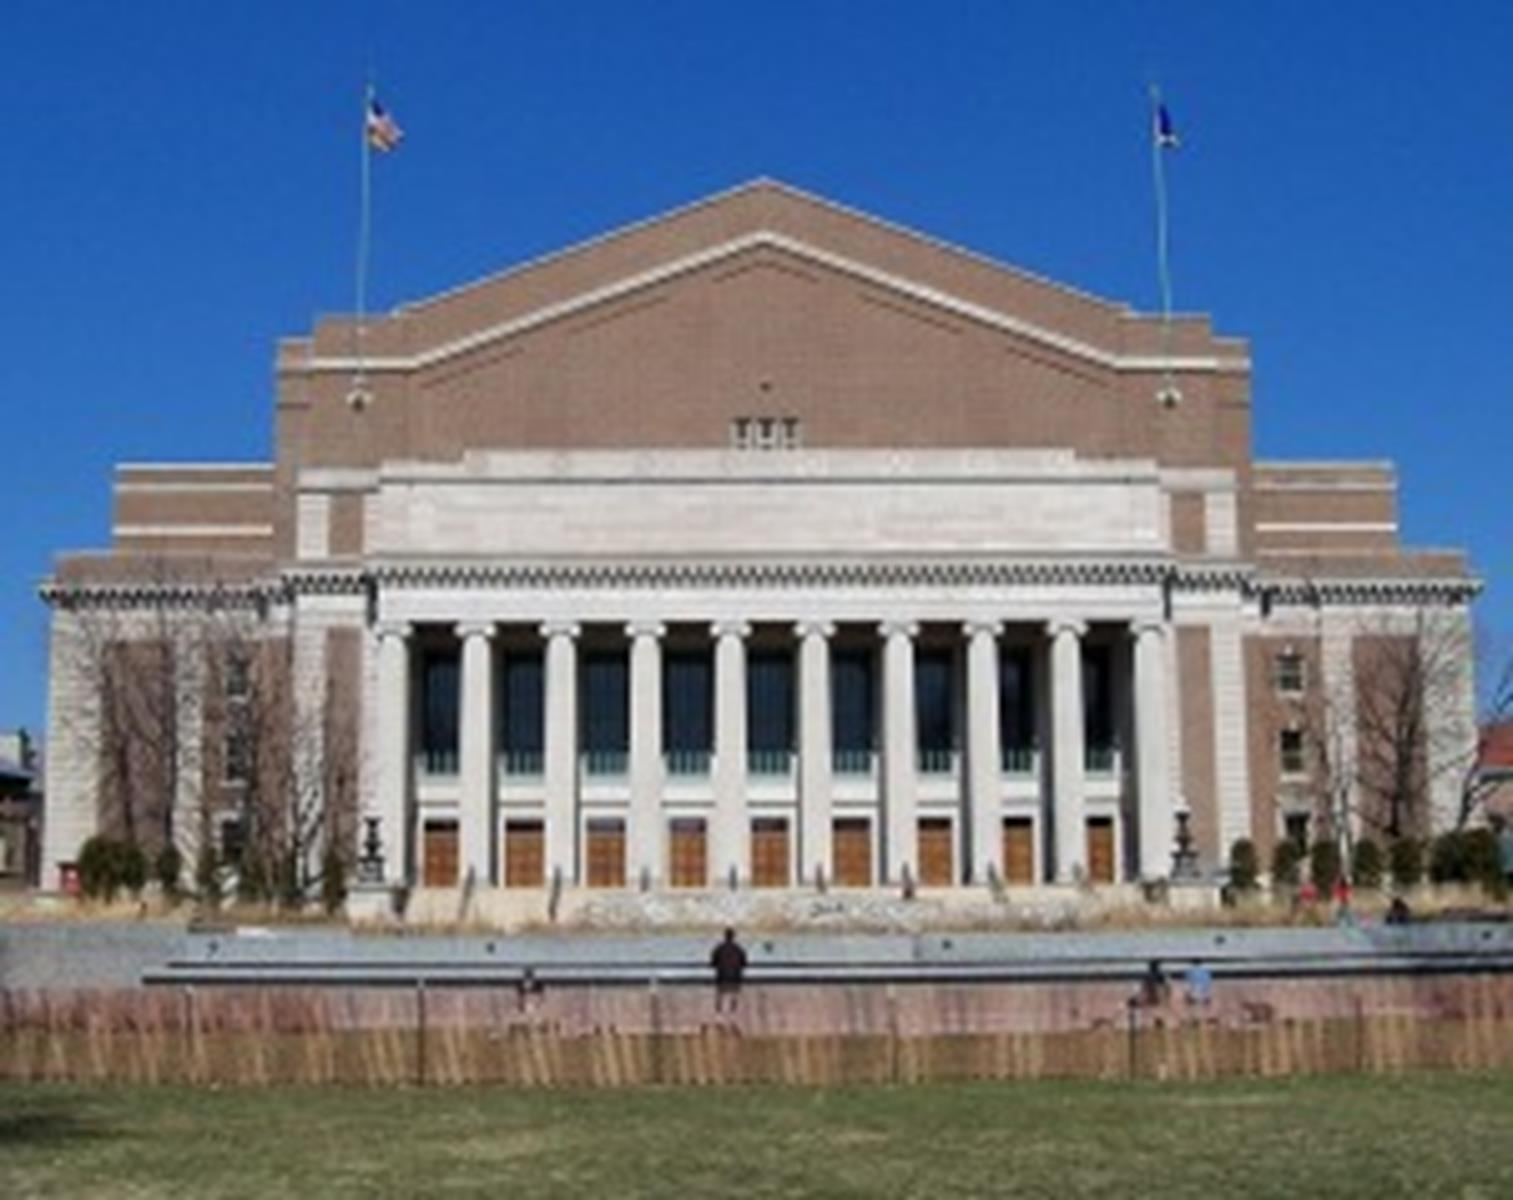 Northrup Memorial Auditorium